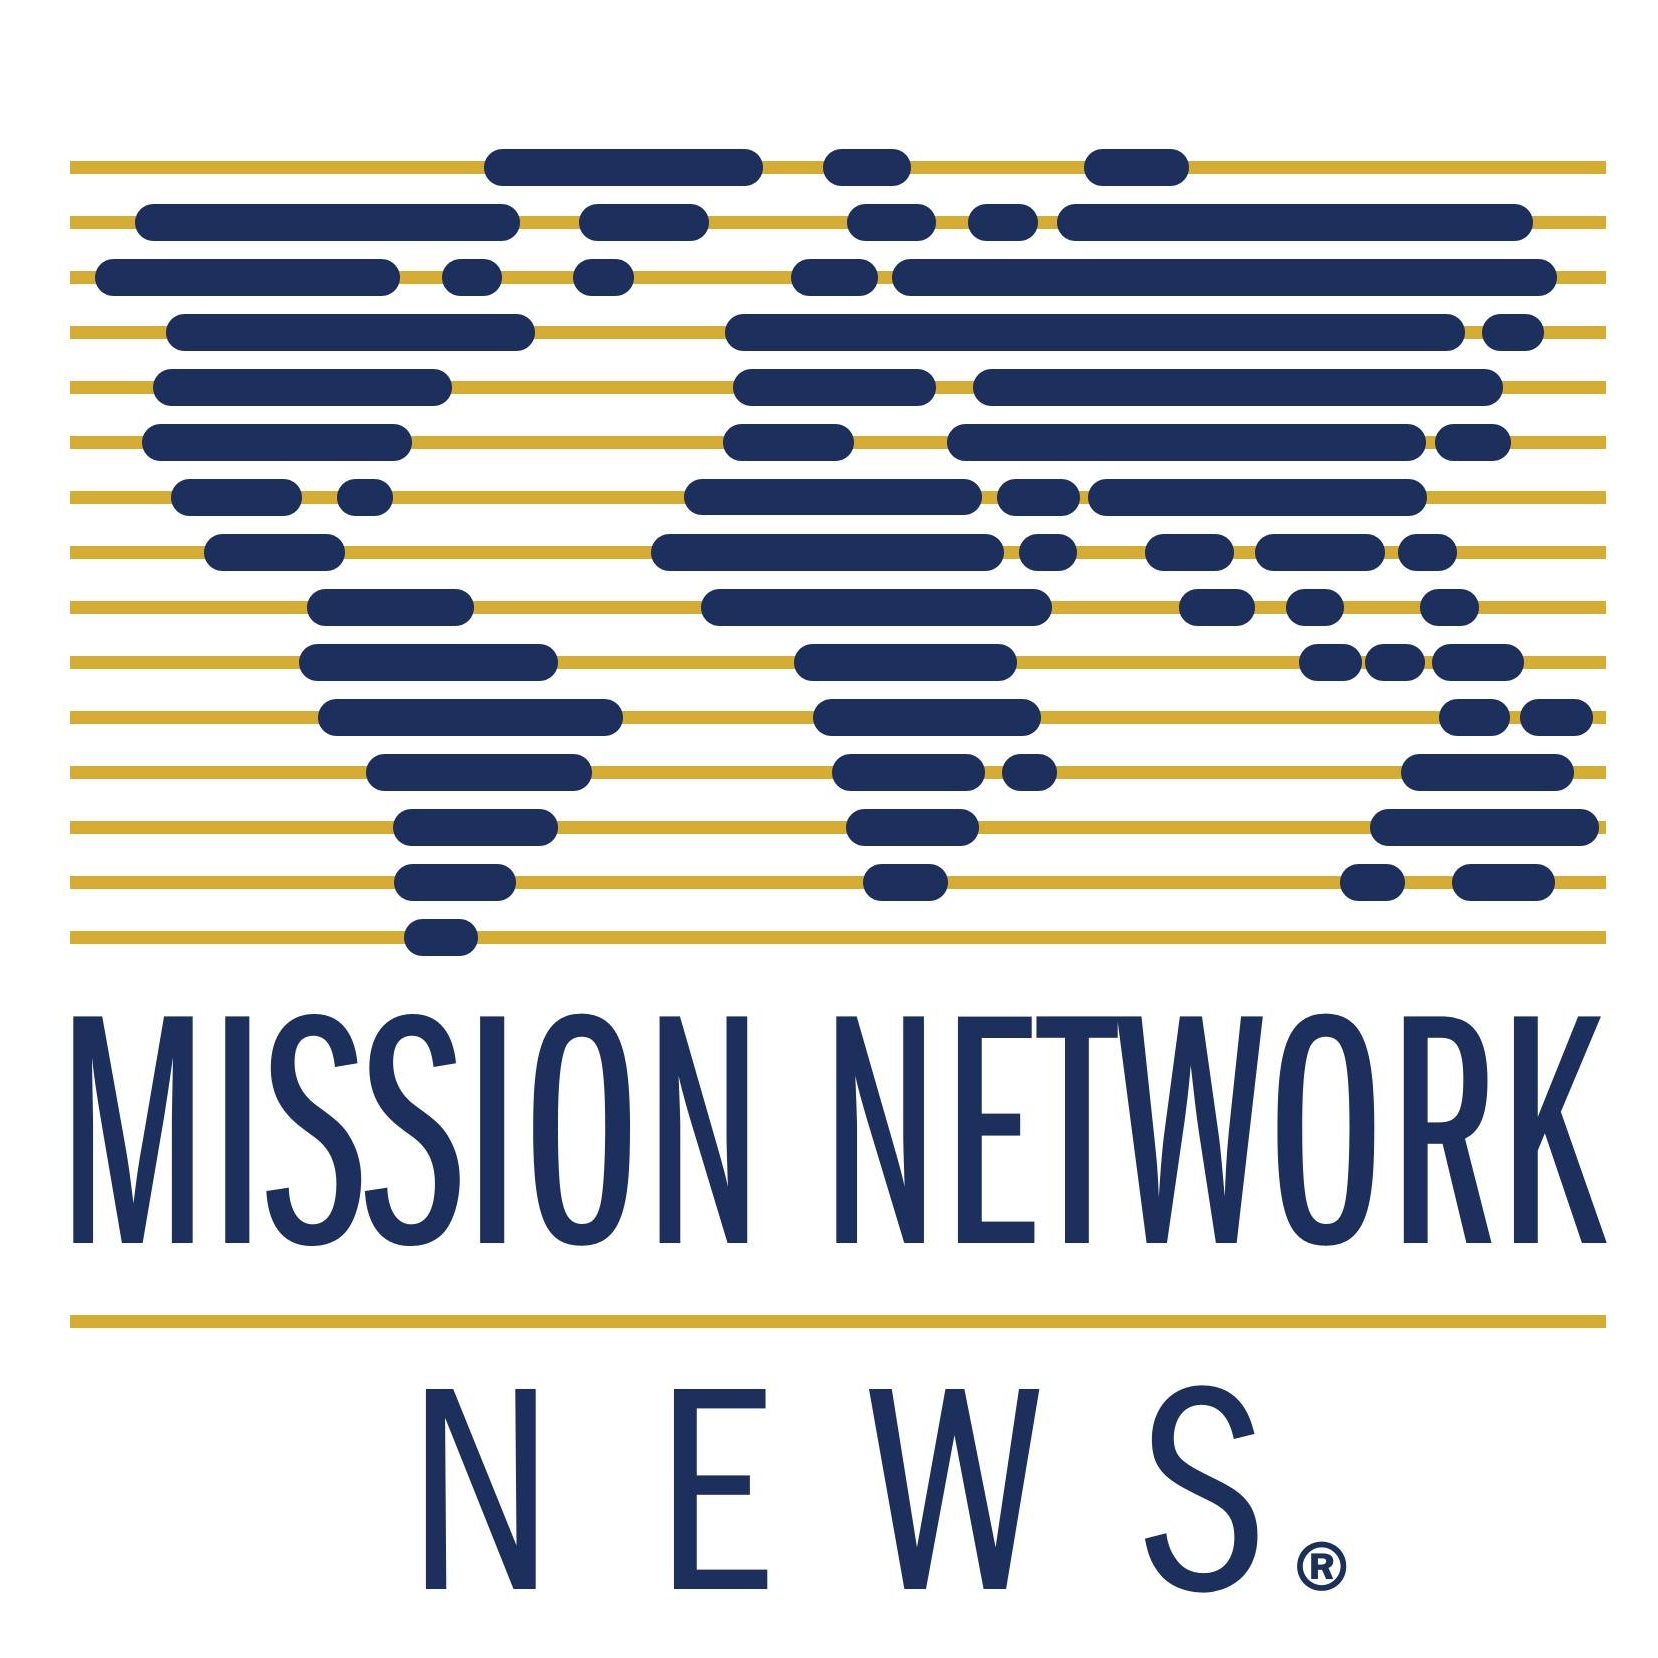 Exciting transition for Mission Network News